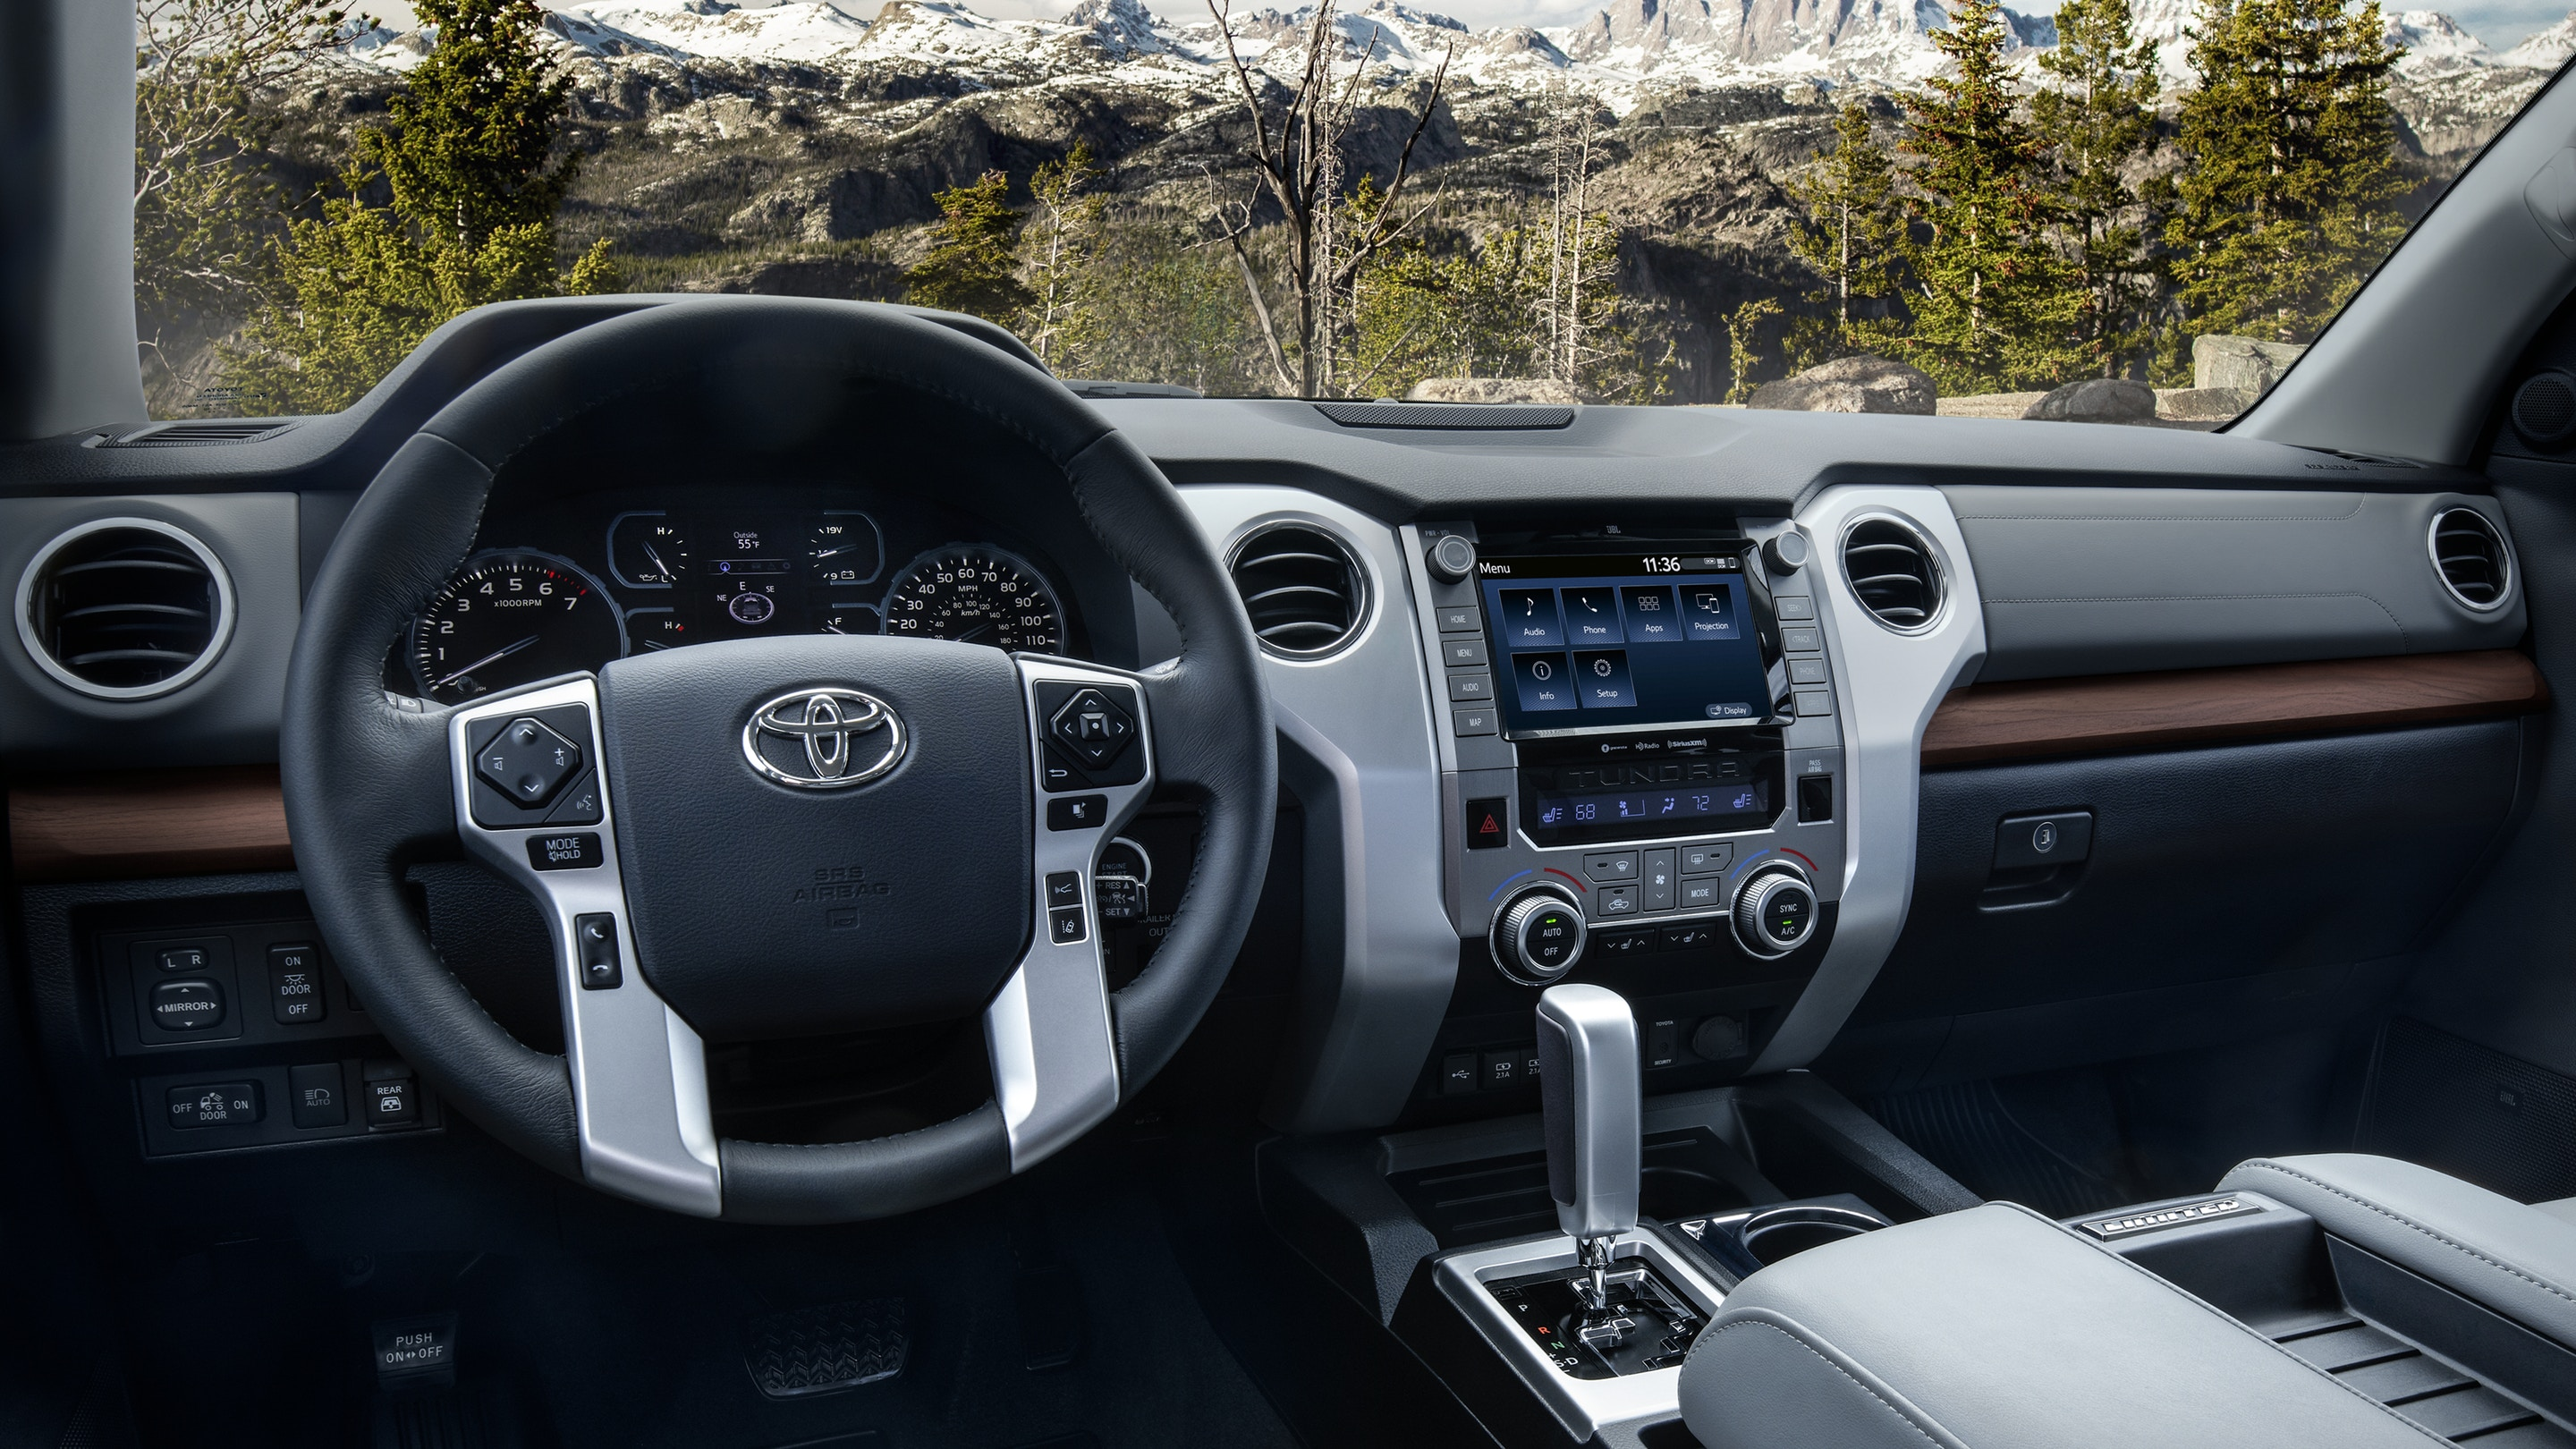 Modern Cab of the 2020 Toyota Tundra